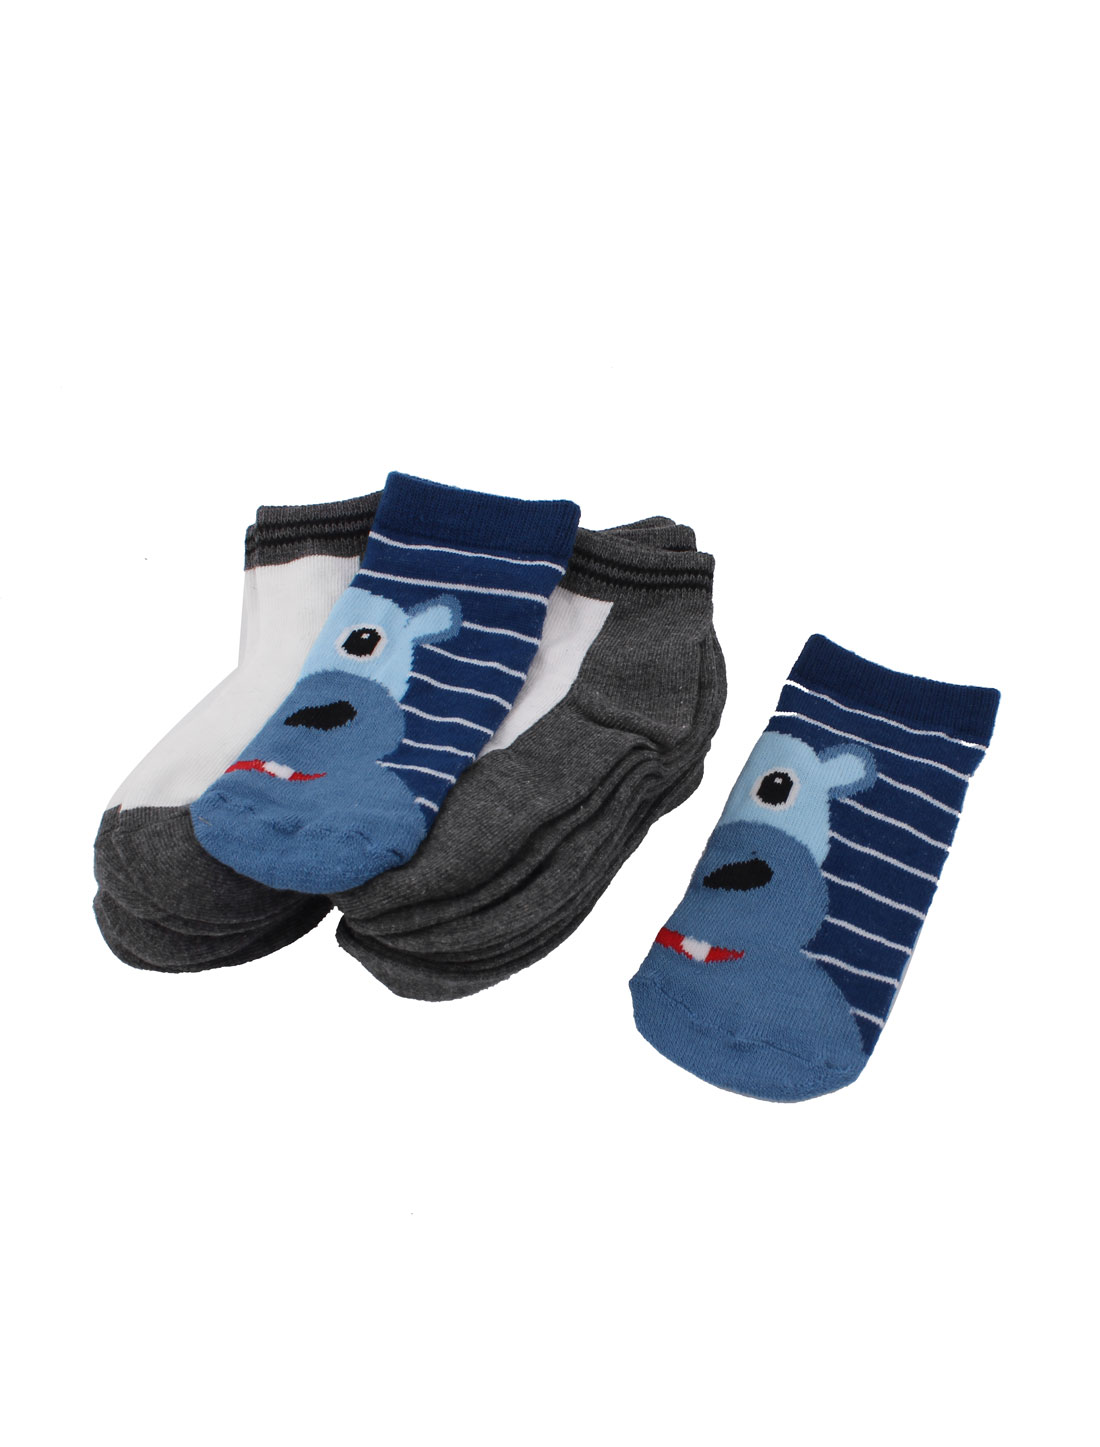 10Pairs Casual Blue White Gray Stretch Cuff Ankle Short Low Cut Socks Sockens for Boys